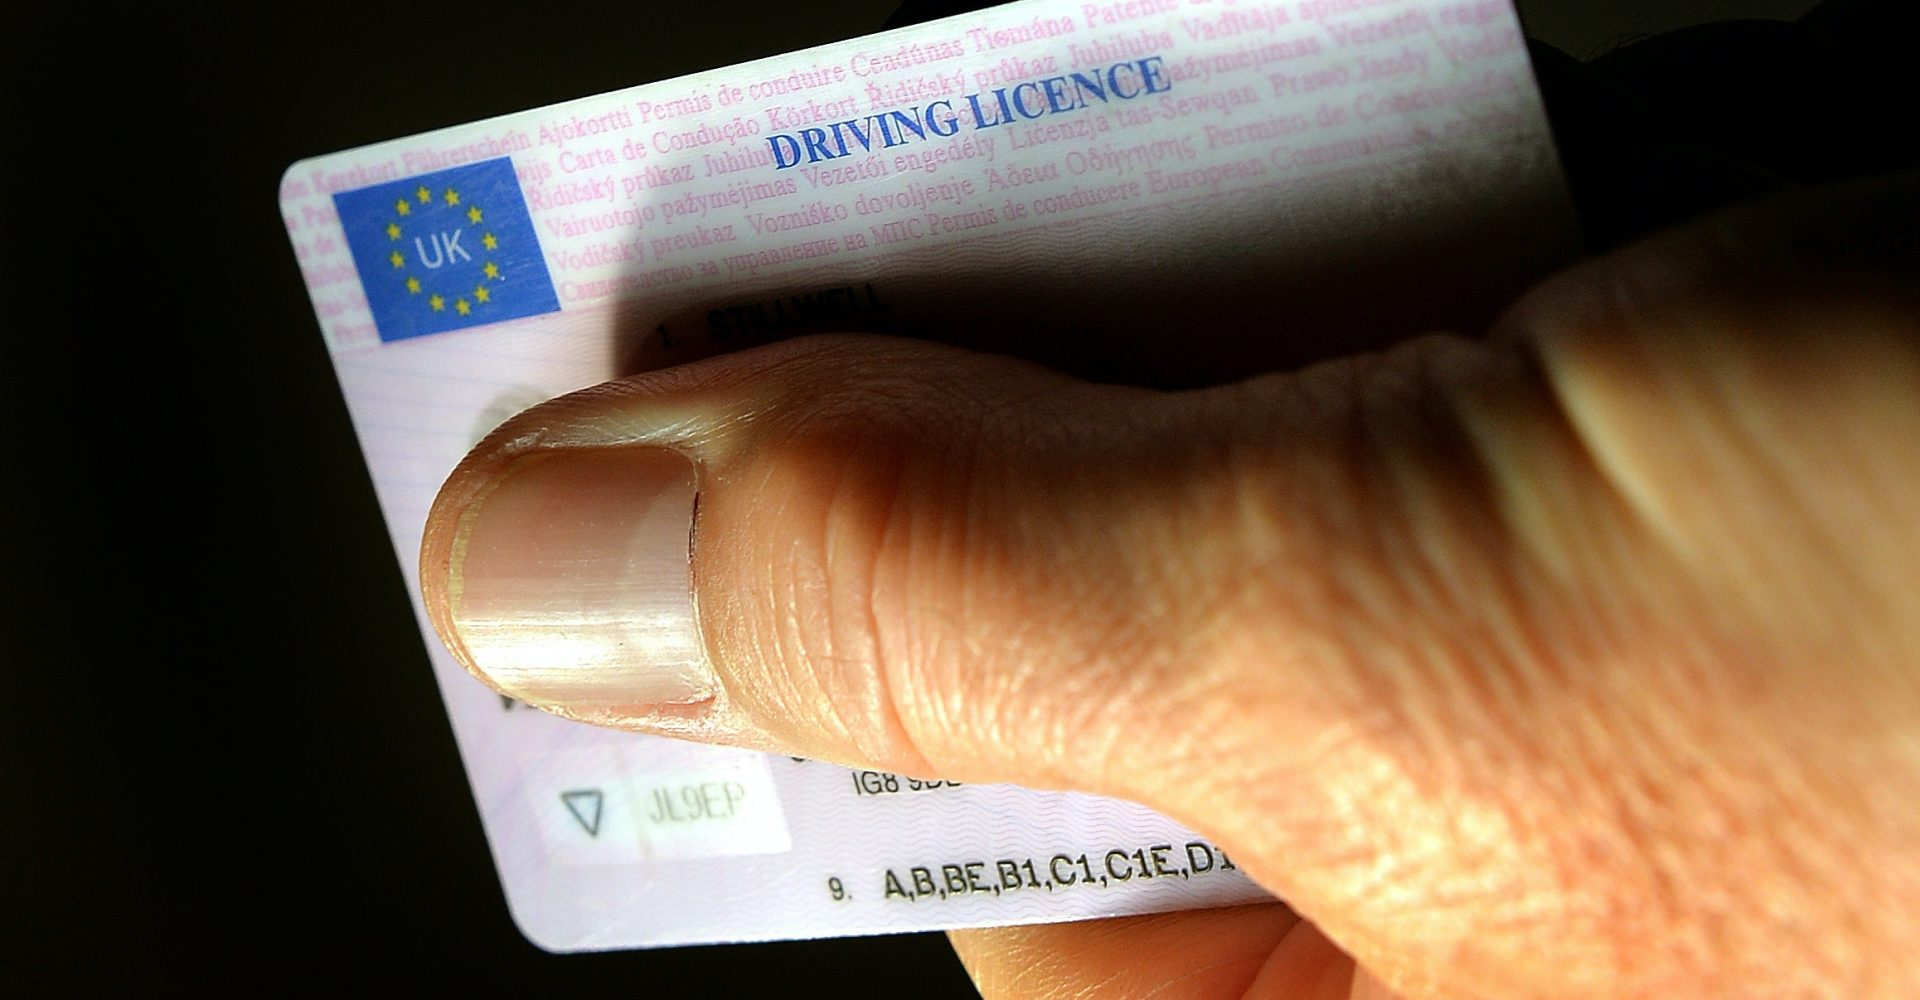 UK motorists to get seven-month extension for photocard driving licences